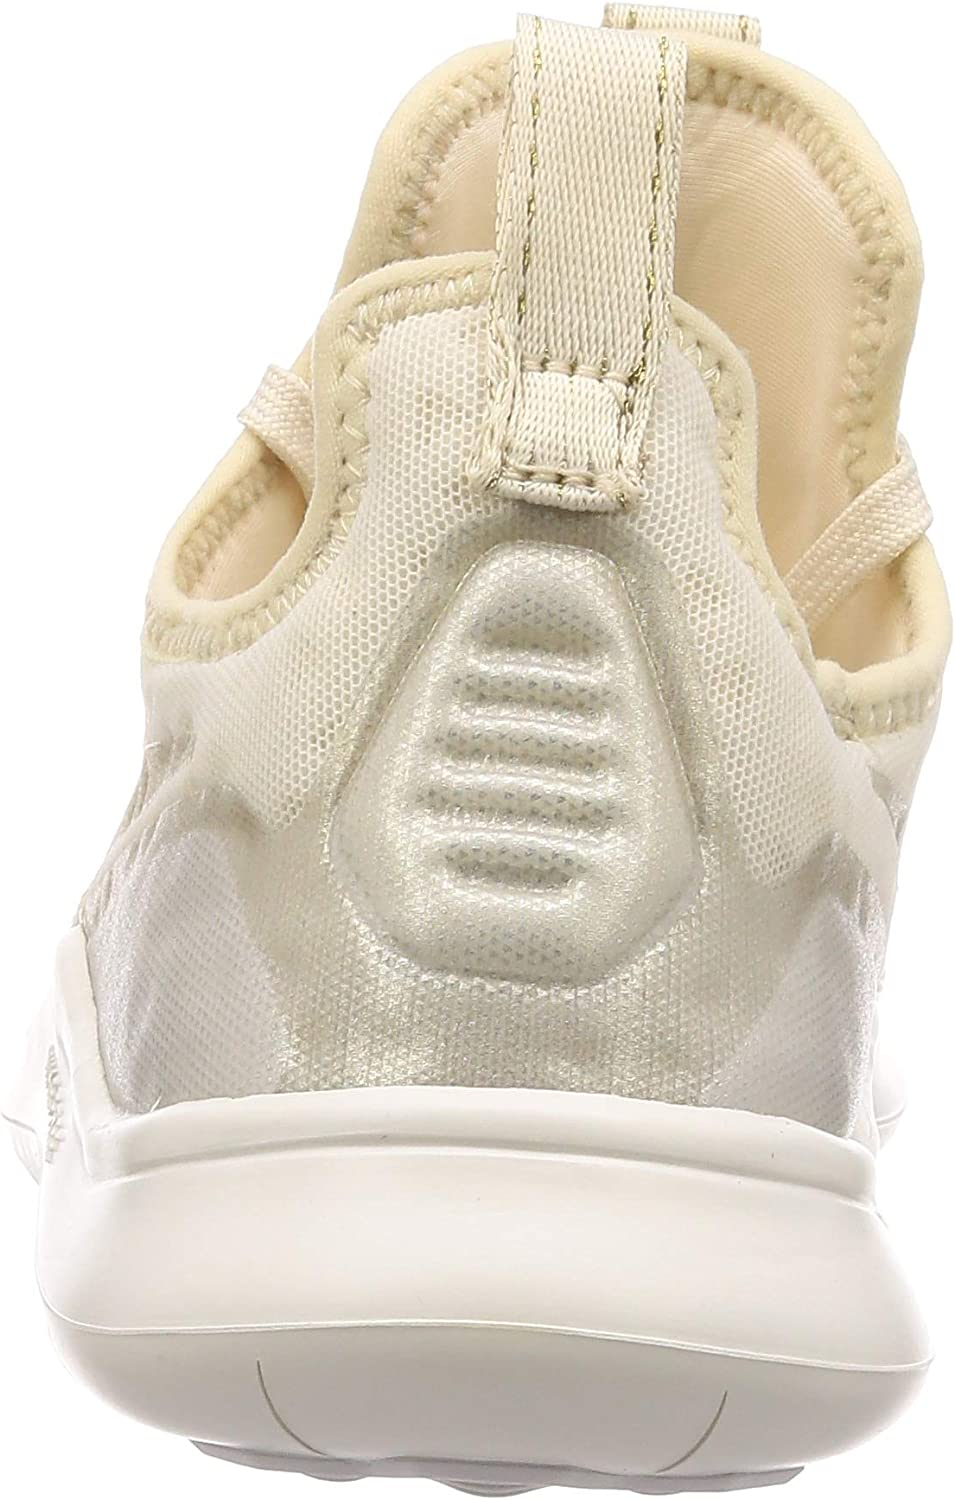 Nike Womens Free TR 8 Athletic Trainer Running Shoes Light Cream